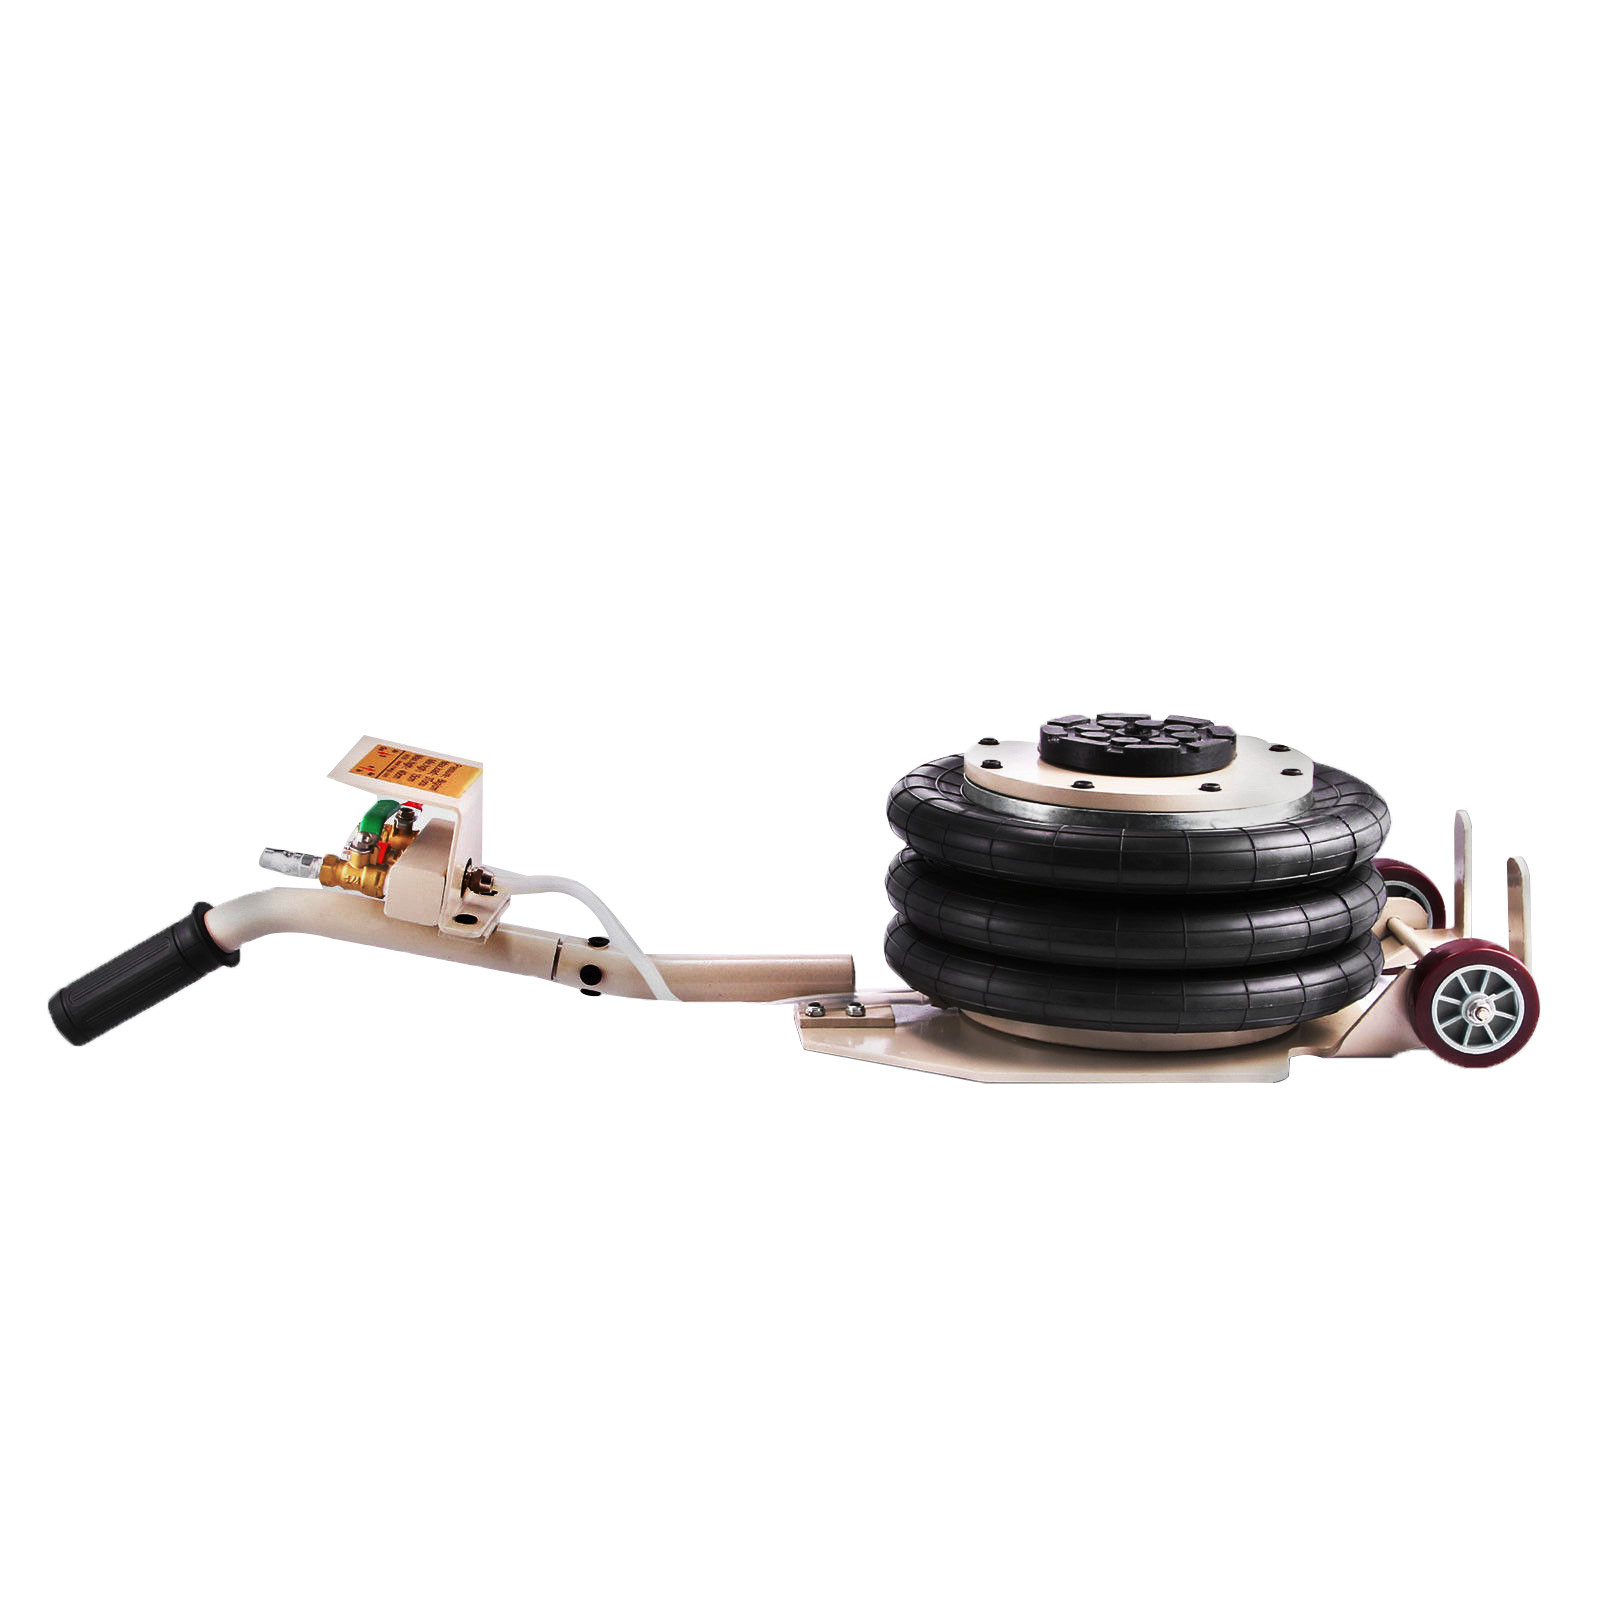 3-Ton-Triple-Bag-Double-Bag-Air-Jack-Pneumatic-Lifting-Compressed-Air-Lift-Jack thumbnail 30